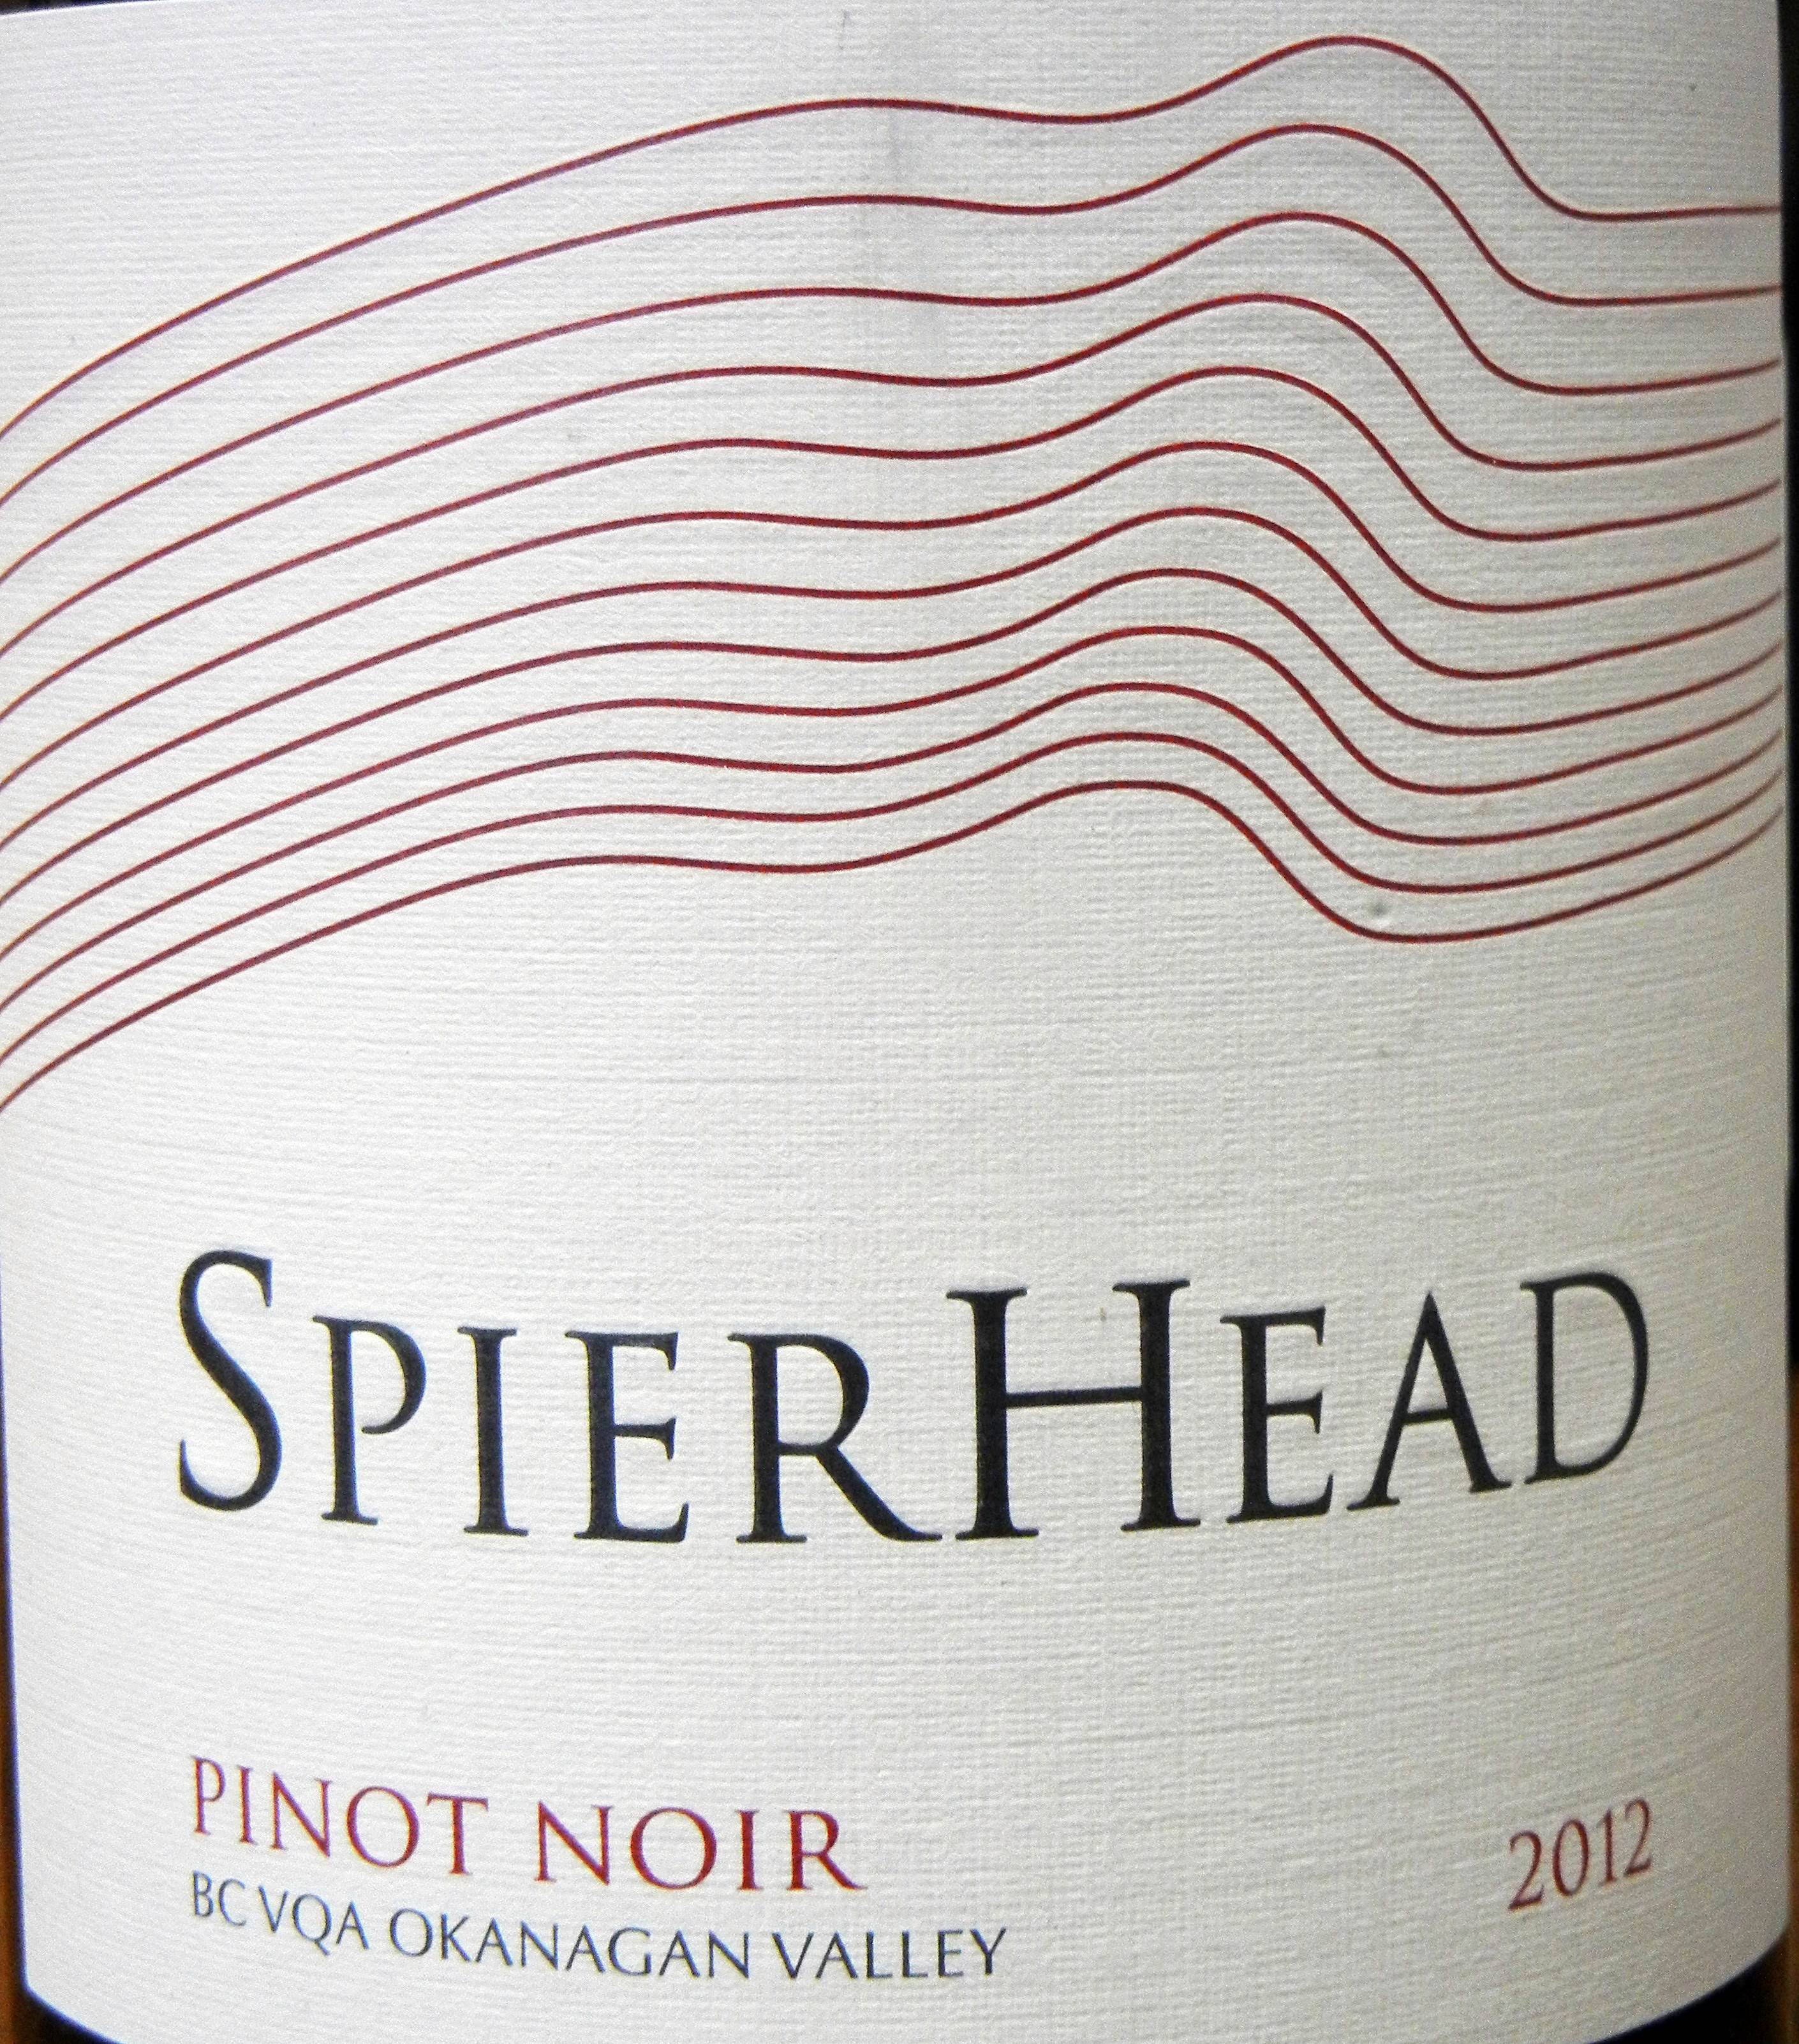 SpierHead Pinot Noir 2012 Label - BC Pinot Noir Tasting Review 22